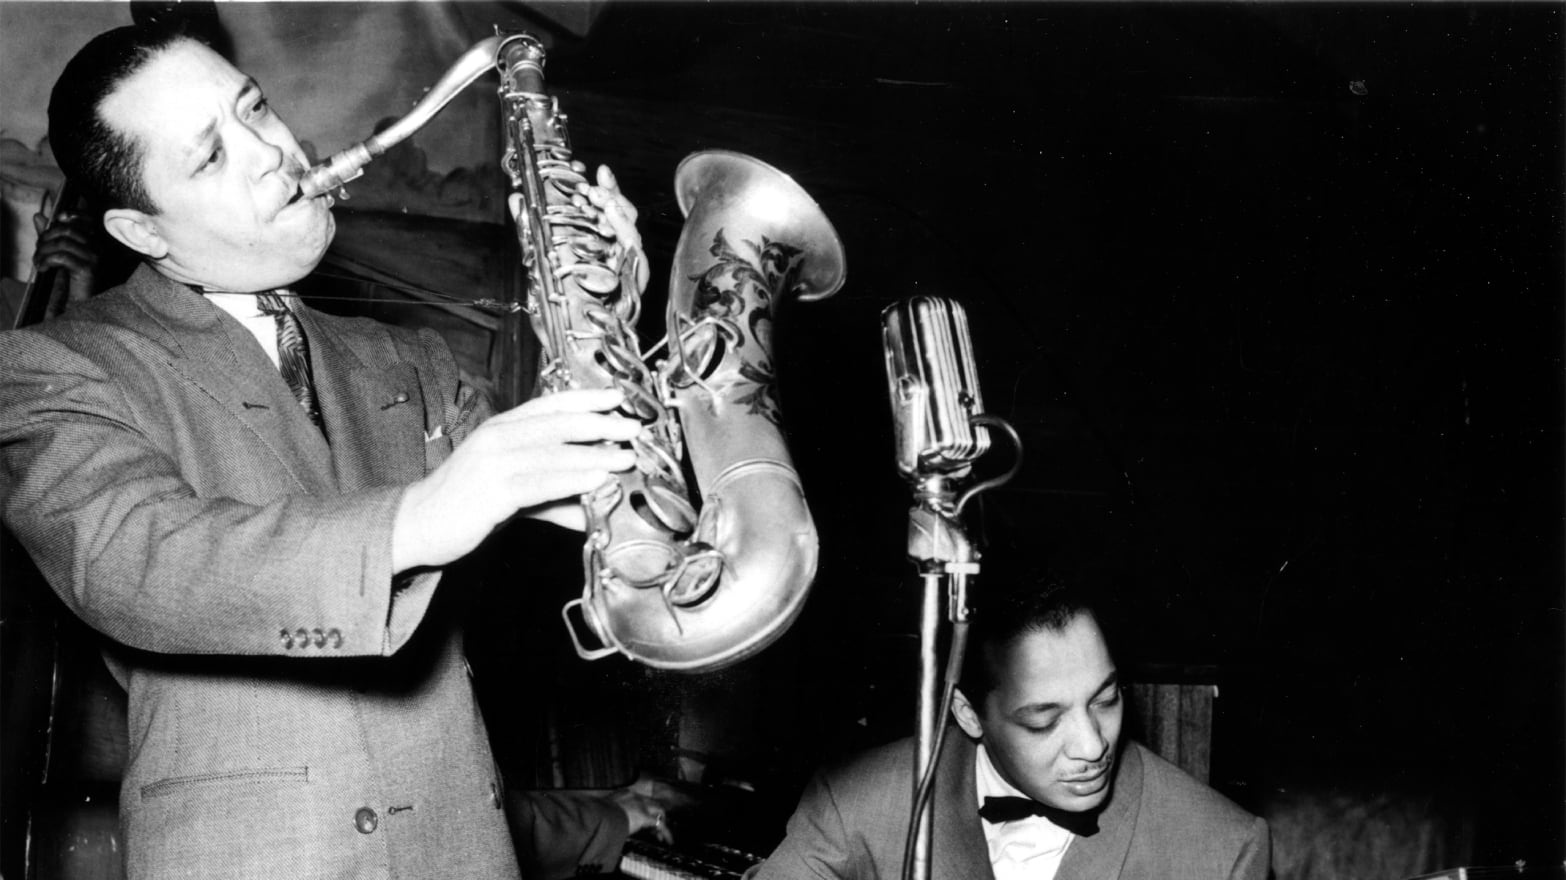 Lester Young (1938-1941)